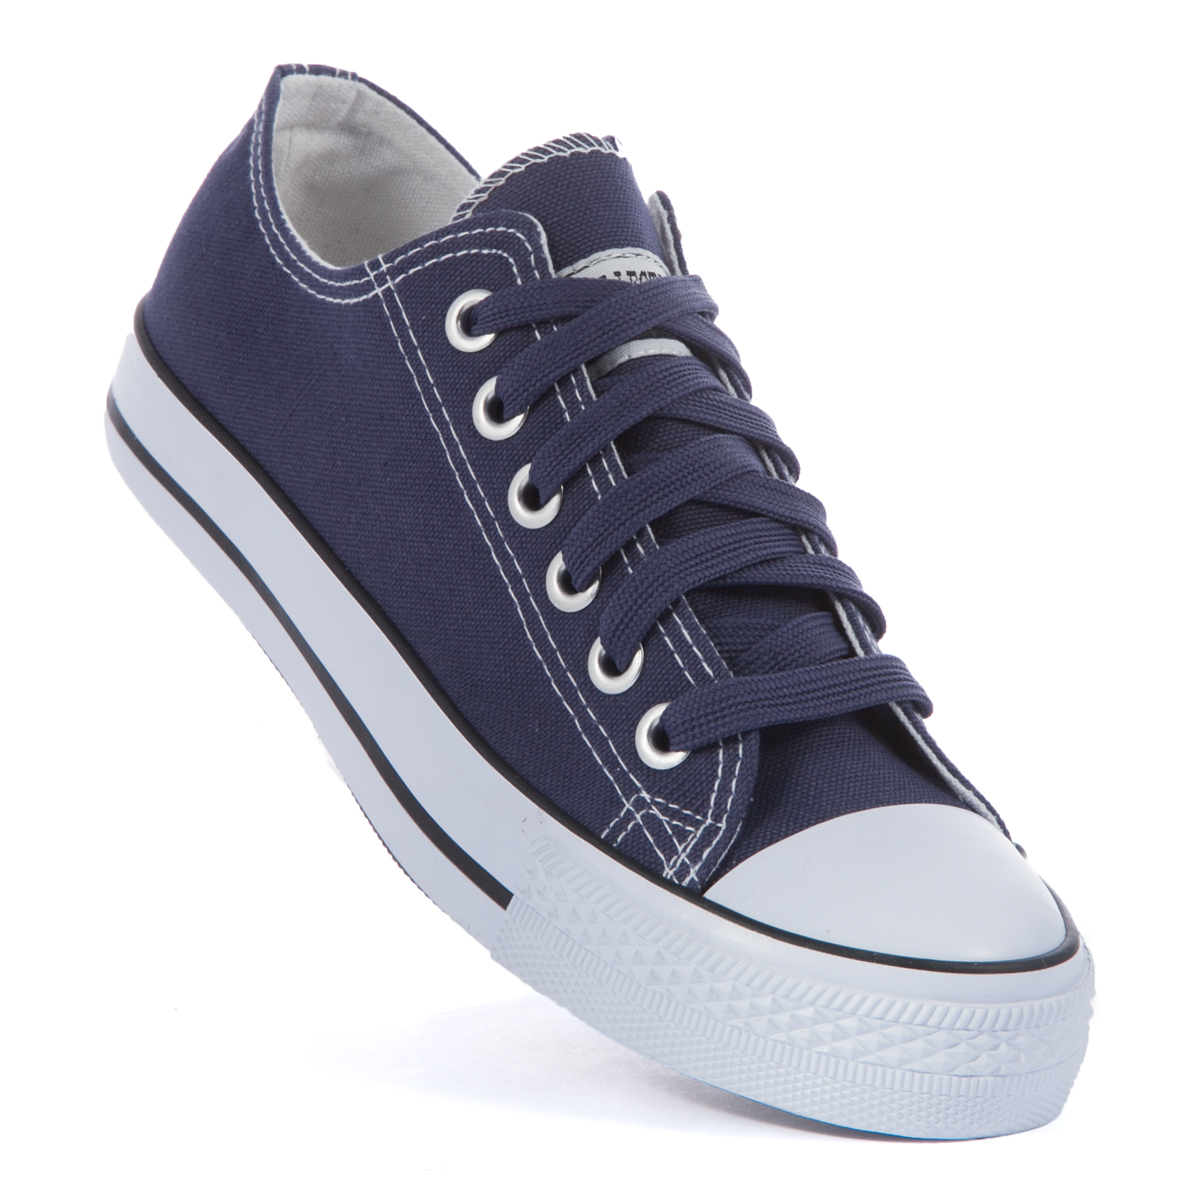 canvas low top shoes casual classic lace up sneakers